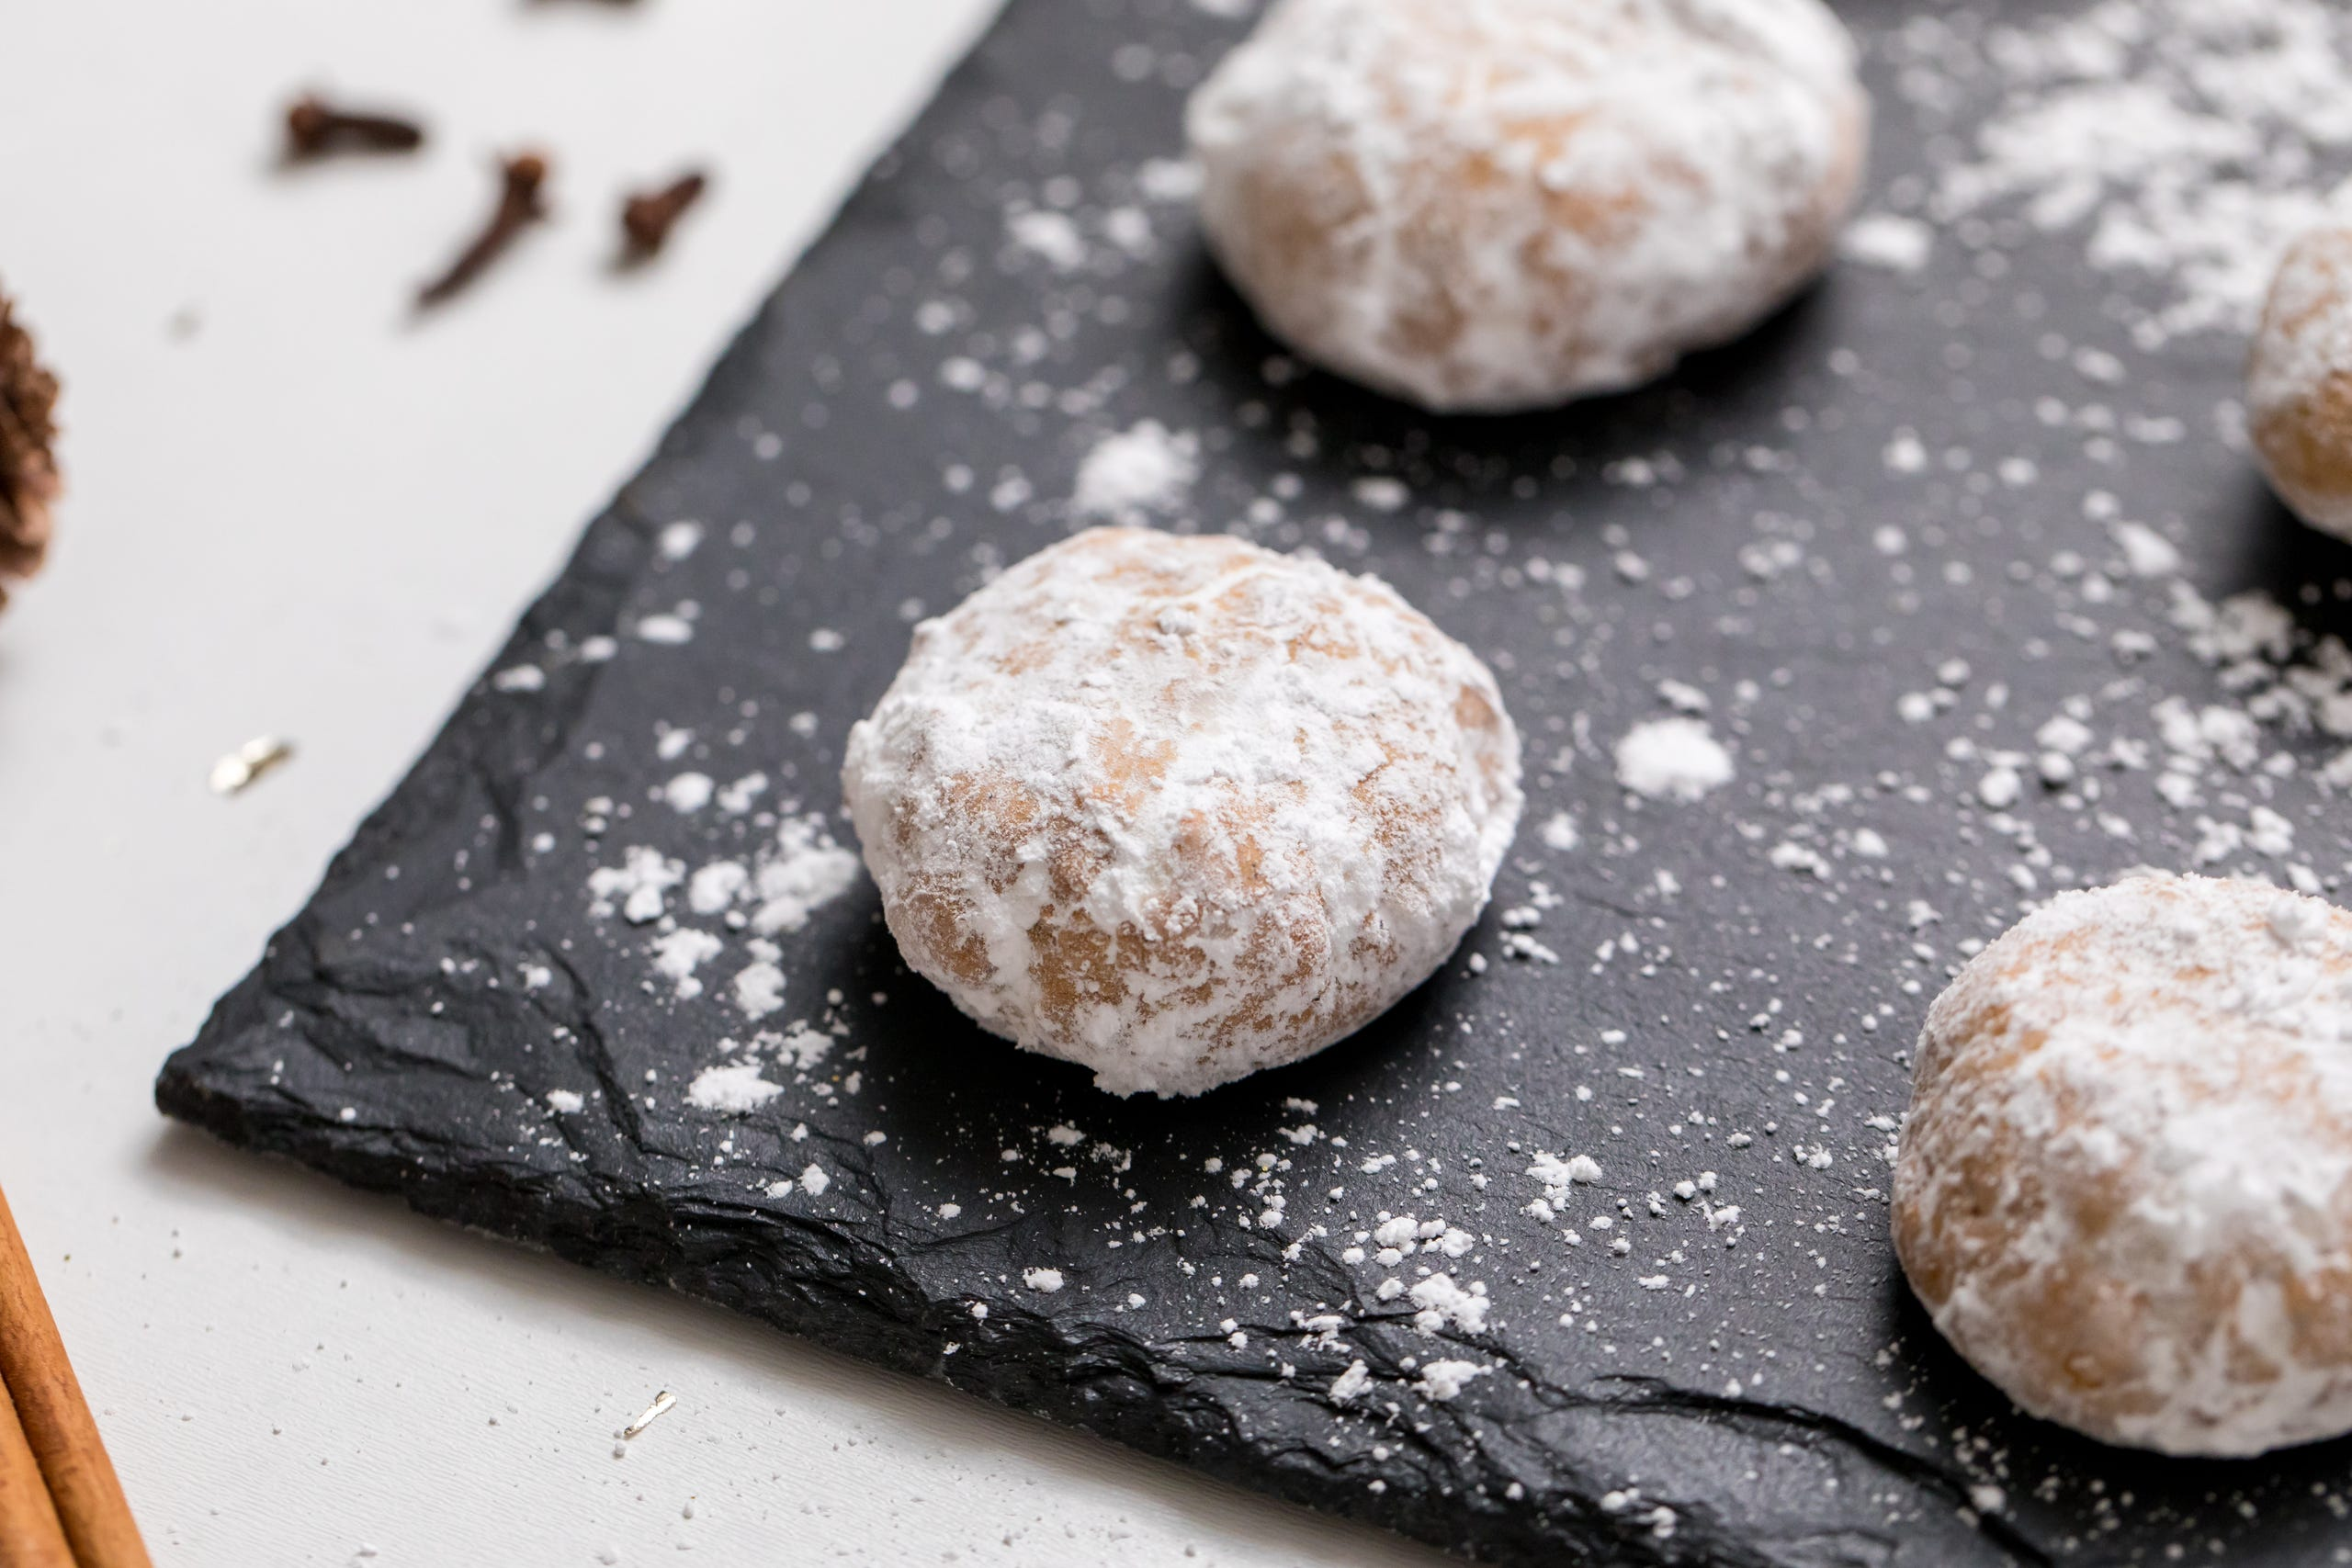 """These<a href=""""https://www.thanksgiving.com/recipes/christmas-cookies/gluten-free-and-vegan-chai-spiced-snowball-cookies?utm_source=usatchristmascookieggallery"""" target=""""_blank"""">chai-spiced snowball cookies</a>, inspired by<a href=""""http://cafejohnsonia.com/2013/12/chai-spiced-snowball-cookies-gluten-free-and-vegan.html"""" rel="""